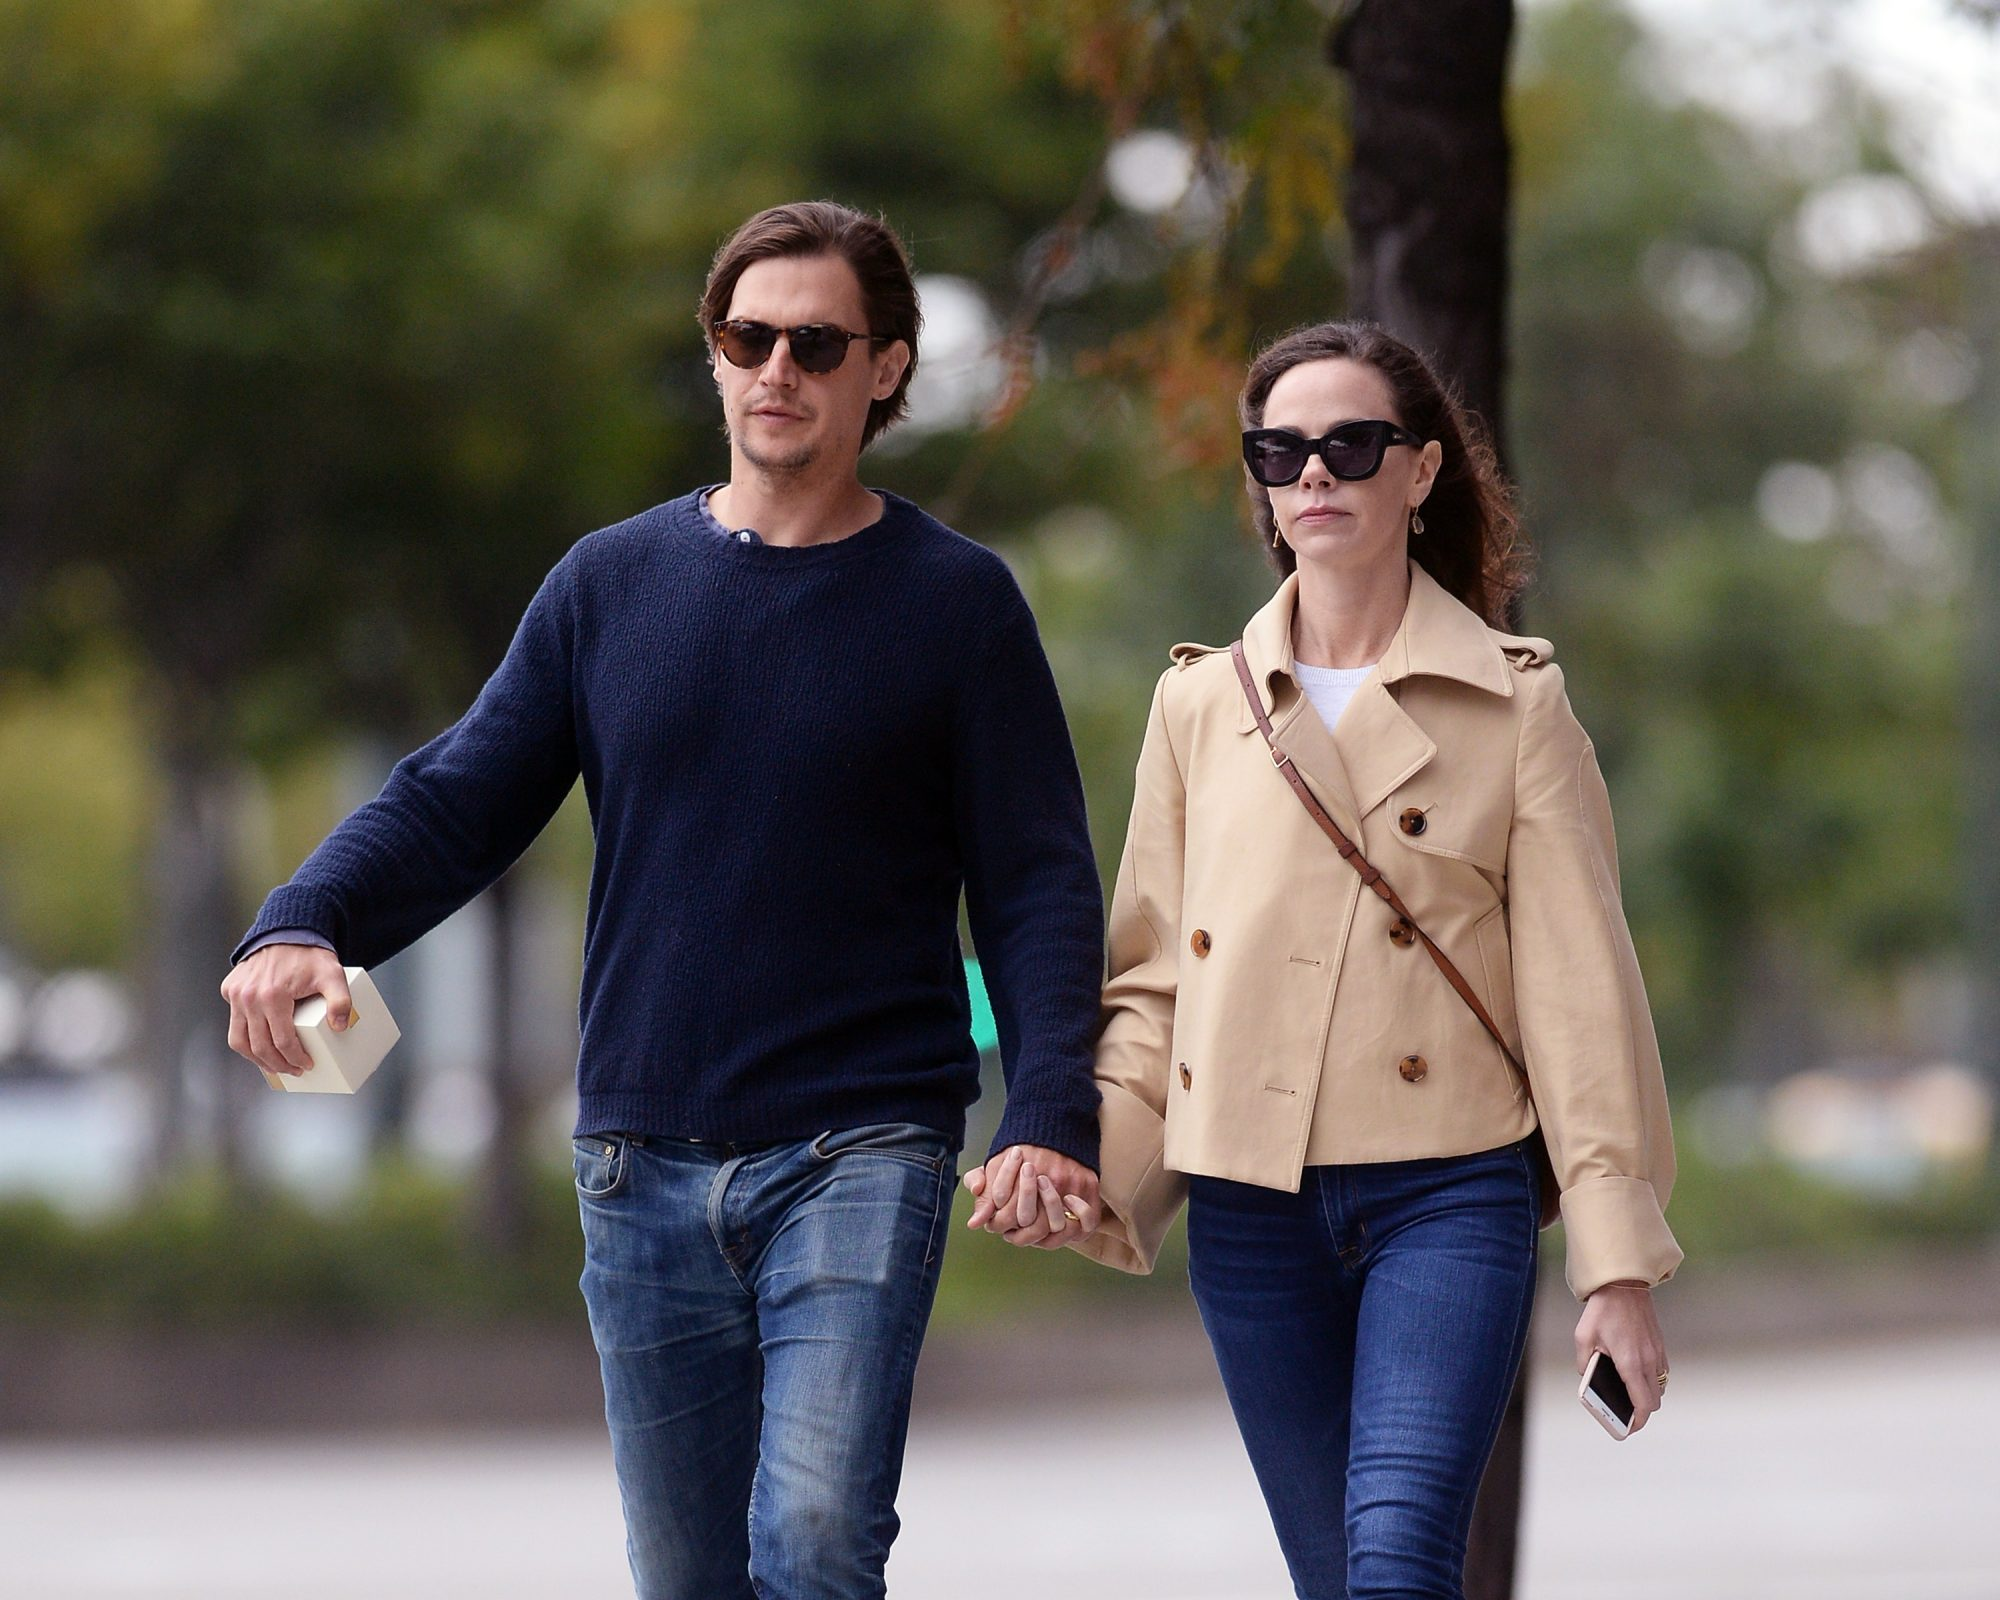 EXCLUSIVE: Barbara Bush and her husband Craig Coyne apartment hunting while holding hands in New York City